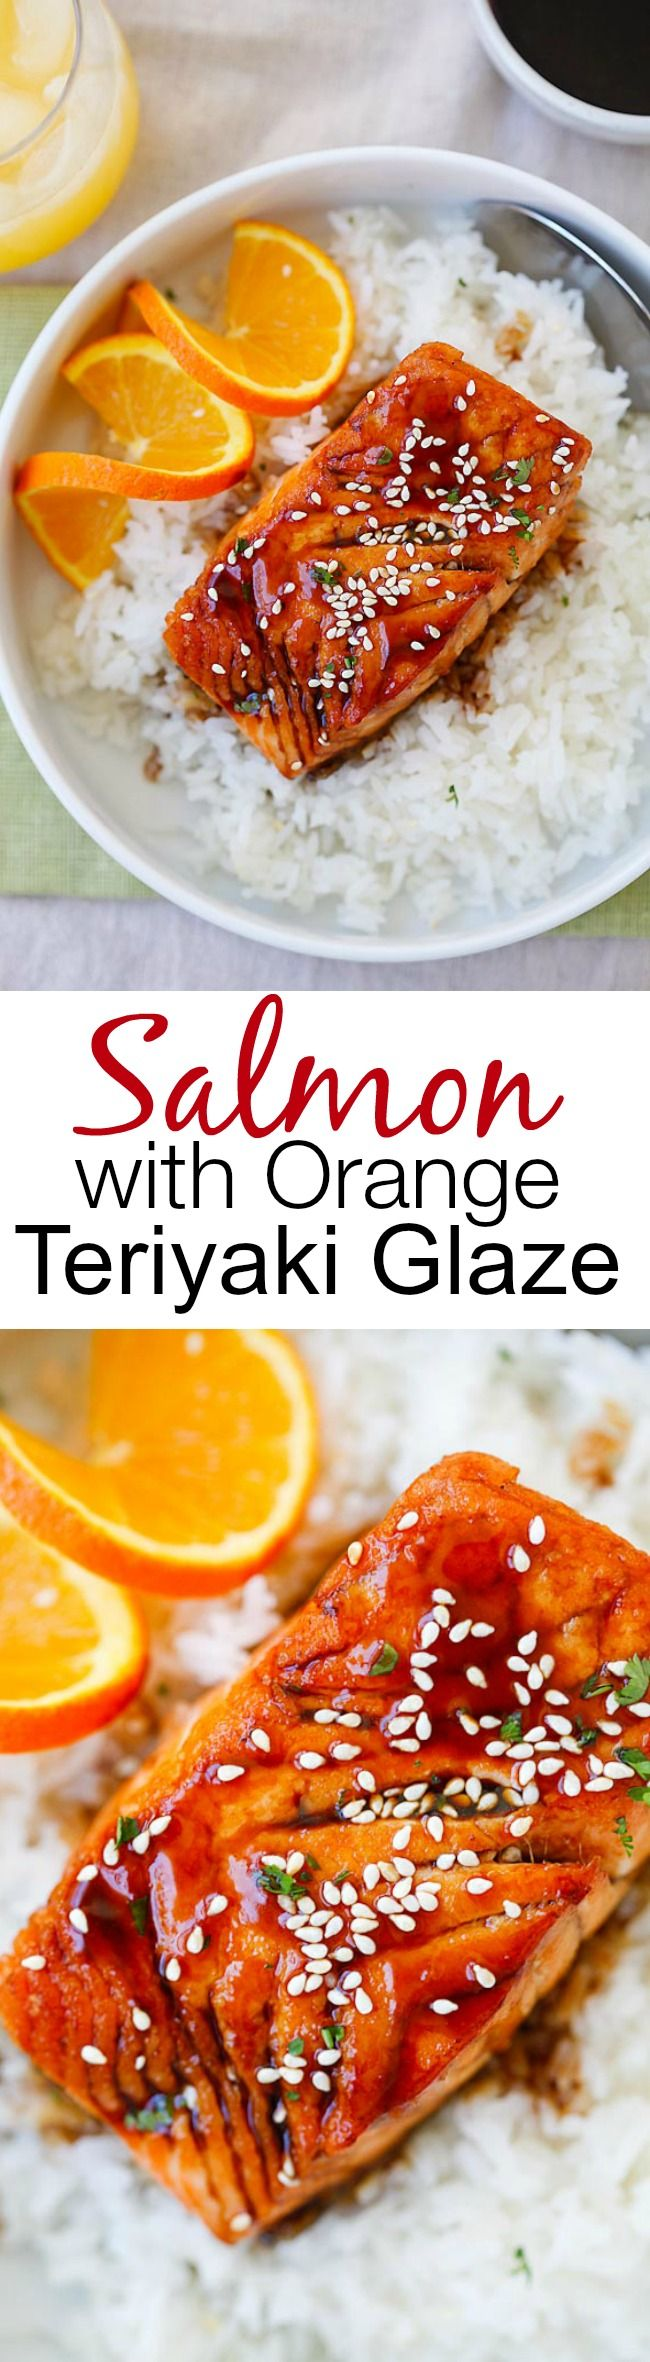 Salmon with Orange Teriyaki Glaze – the easiest & tastiest salmon you'll ever make. Delicious salmon with tangy, sweet & savory orange teriyaki sauce | rasamalaysia.com